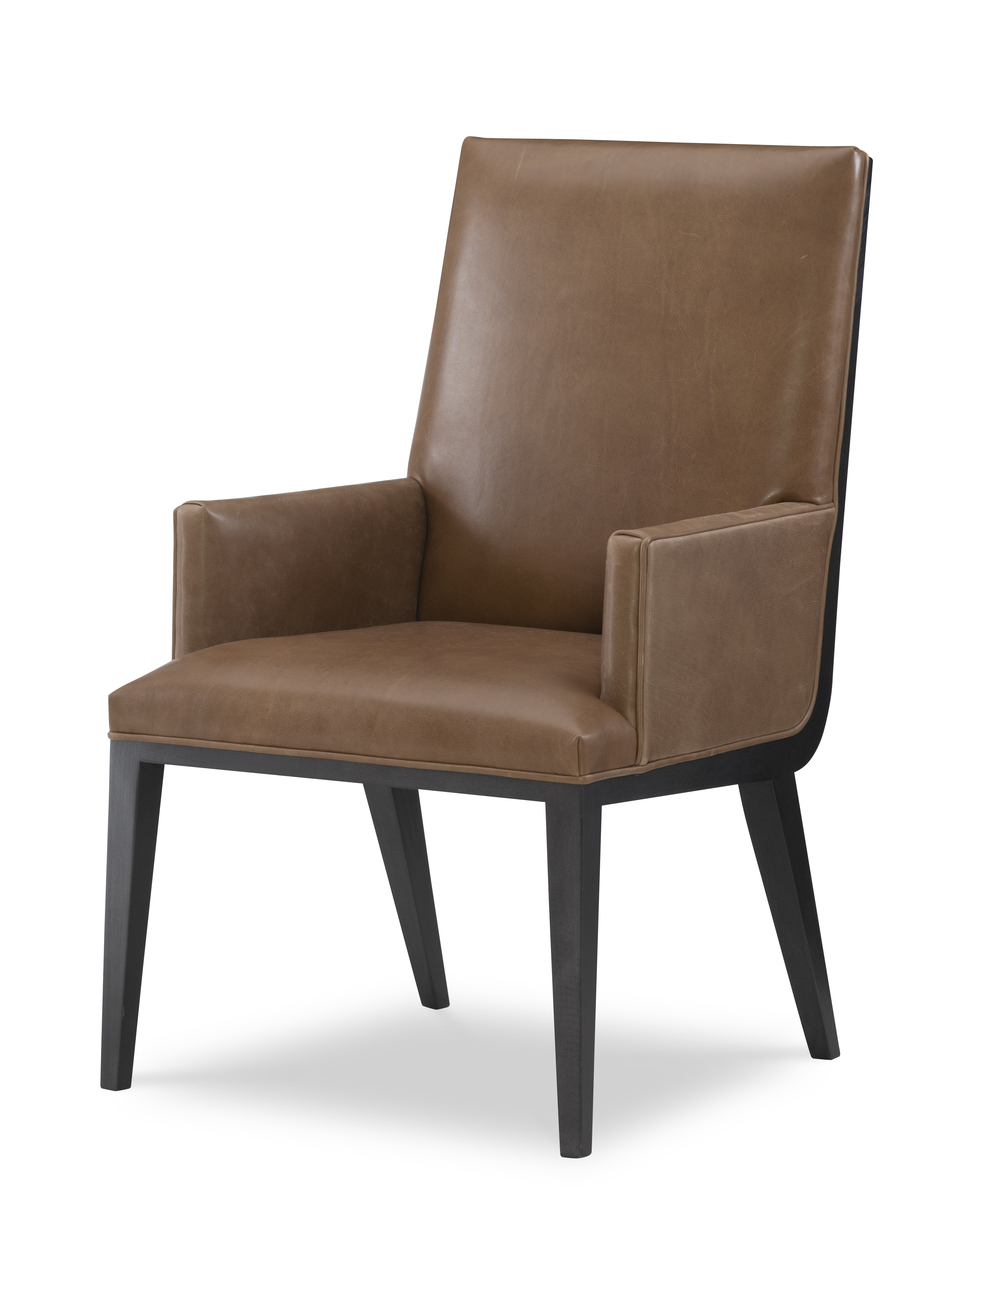 Wesley Hall - Perino Arm Chair